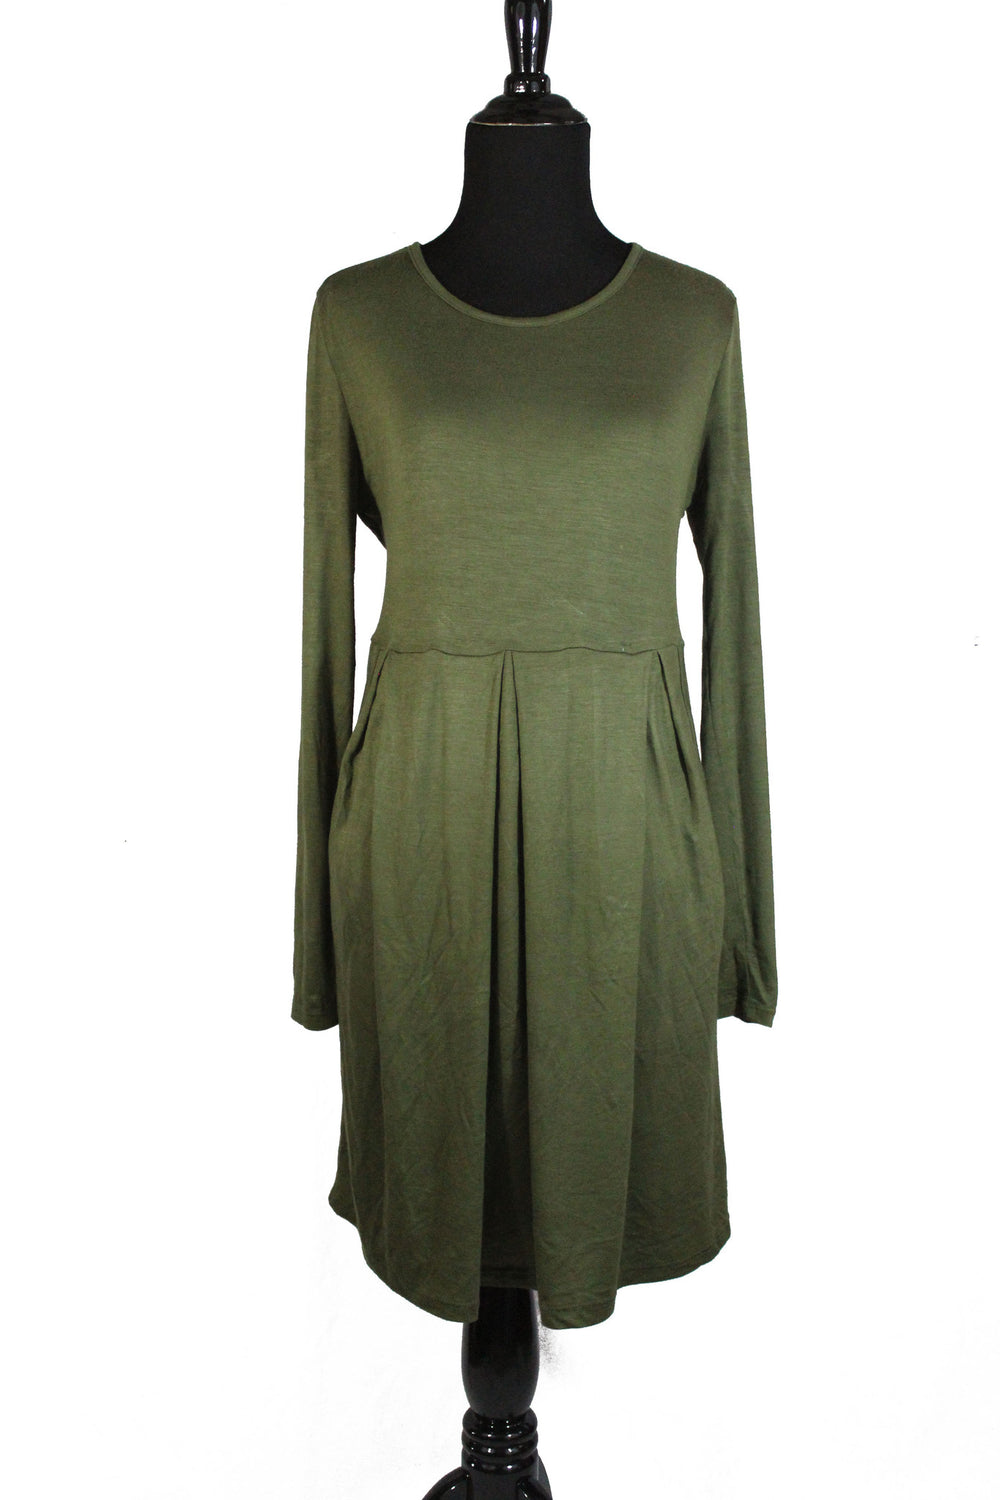 olive long sleeved midi top with an aline and pleats